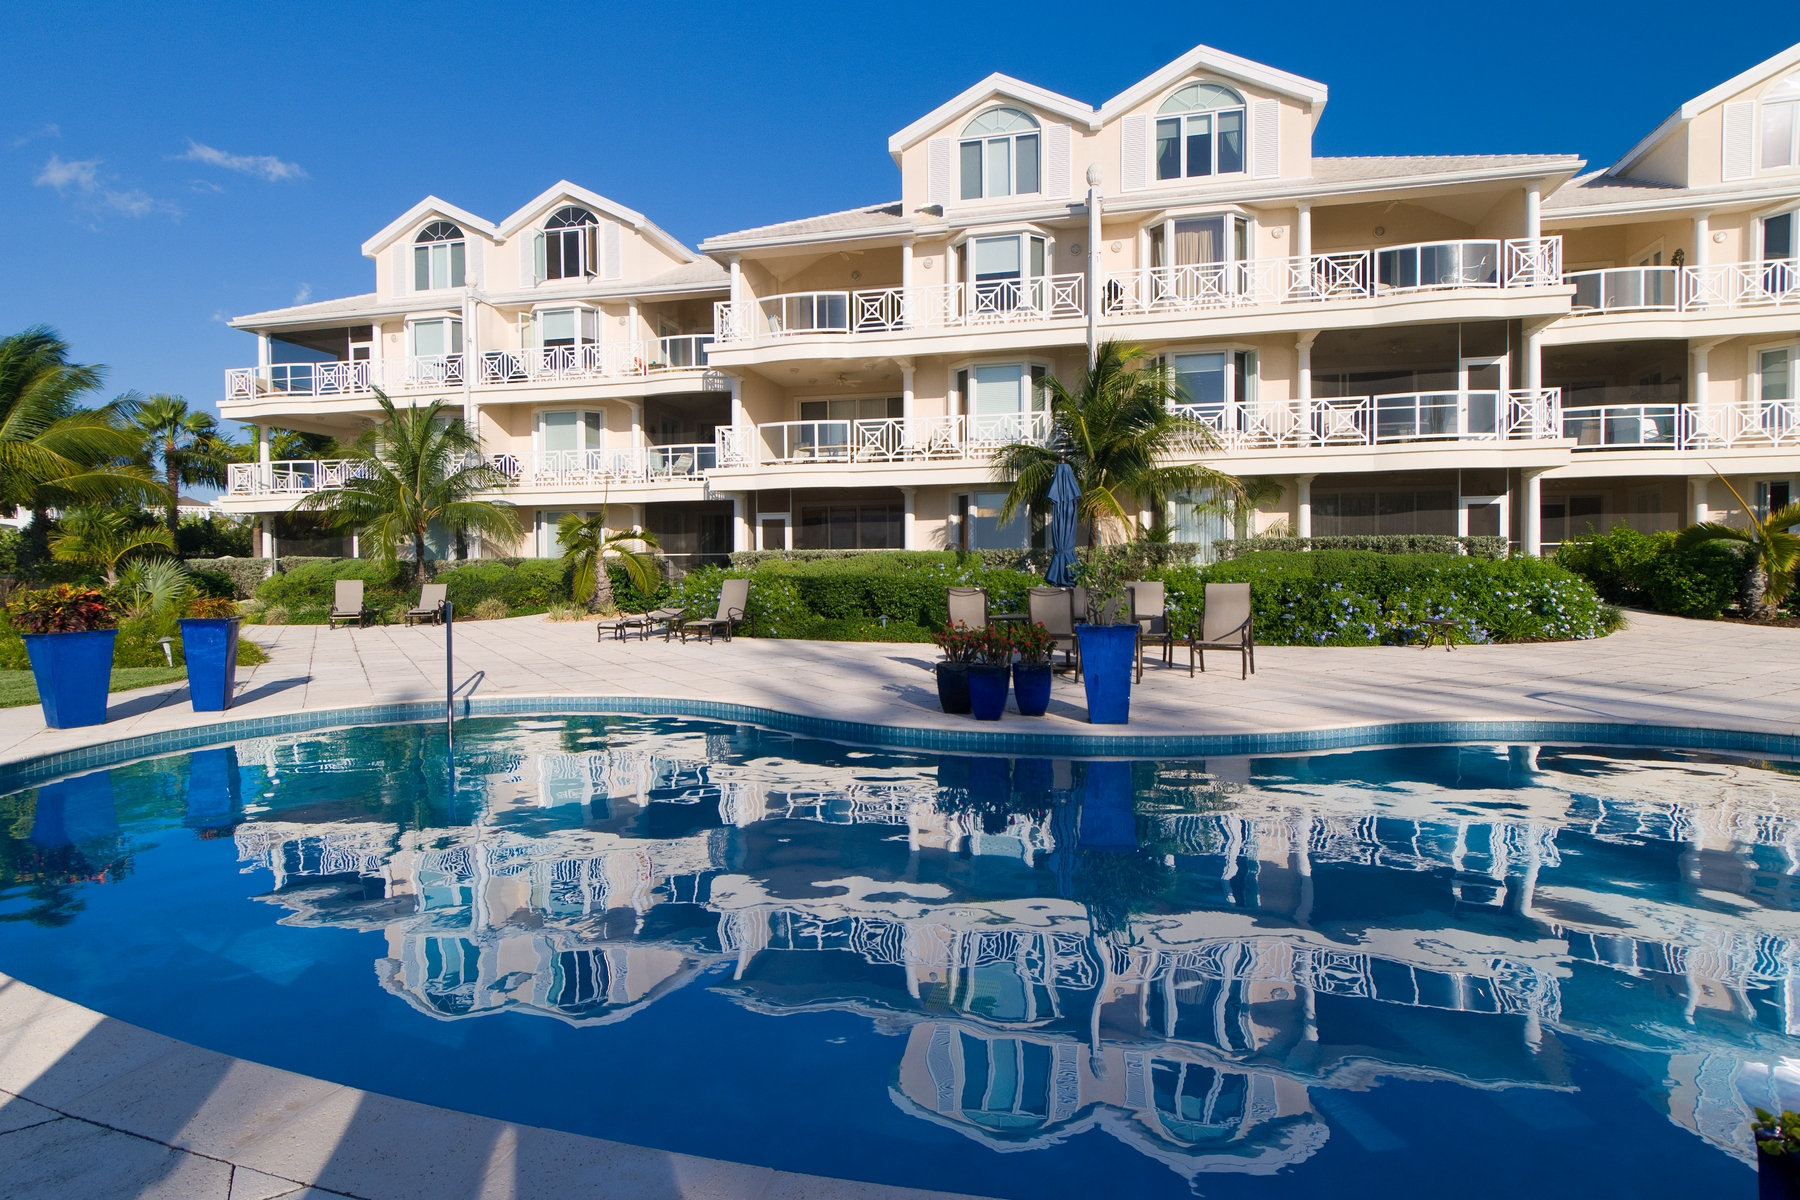 Condominium for Sale at The Grandview on Grace Bay - Suite 202 Grace Bay, Providenciales, Turks And Caicos Islands